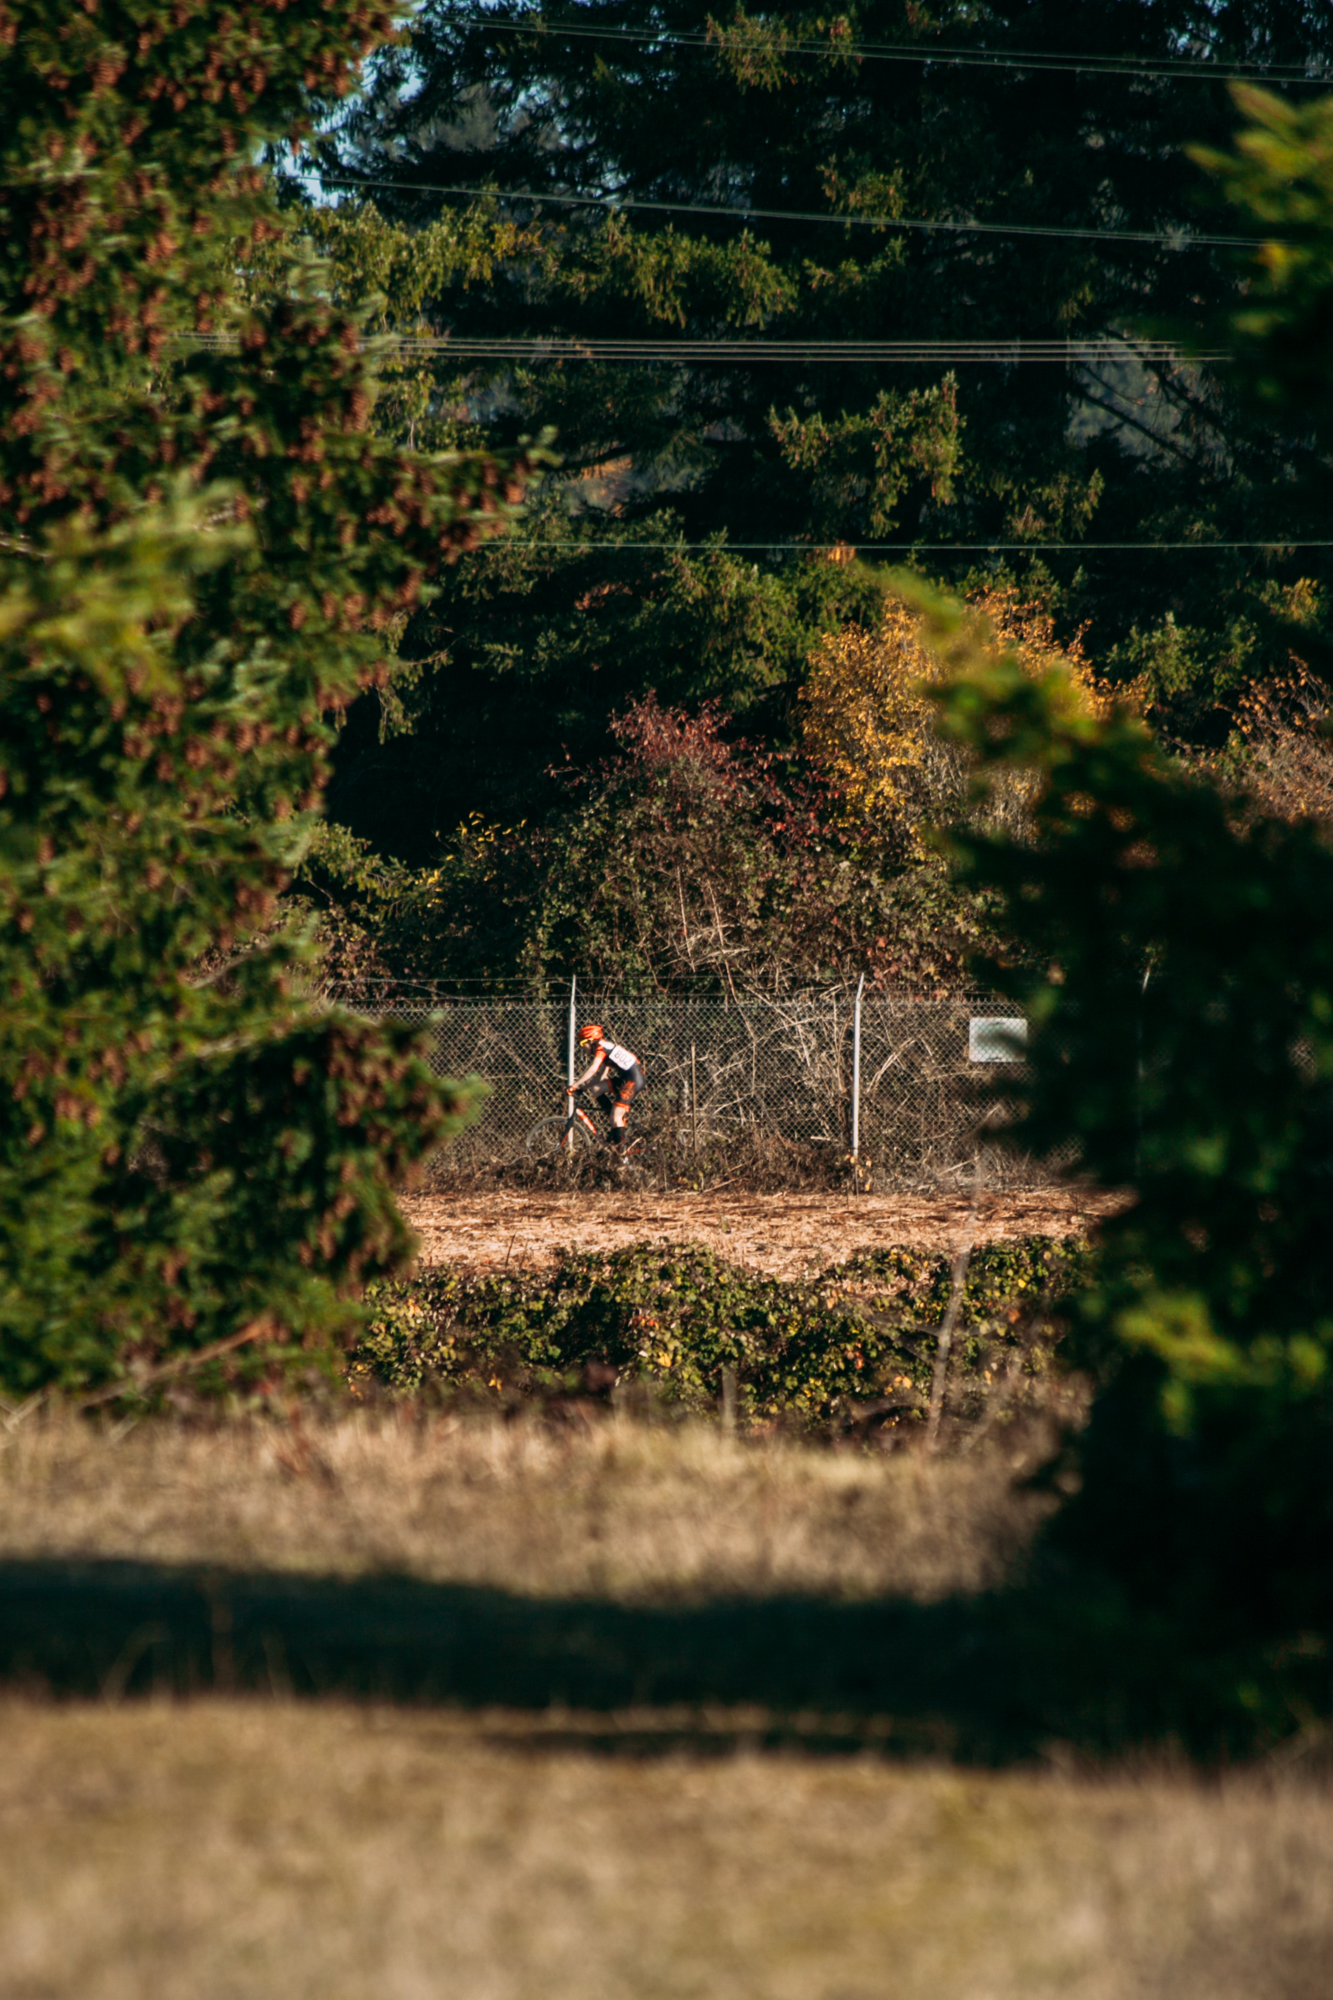 Cyclocross18_CCCX_BartonPark-mettlecycling134.jpg